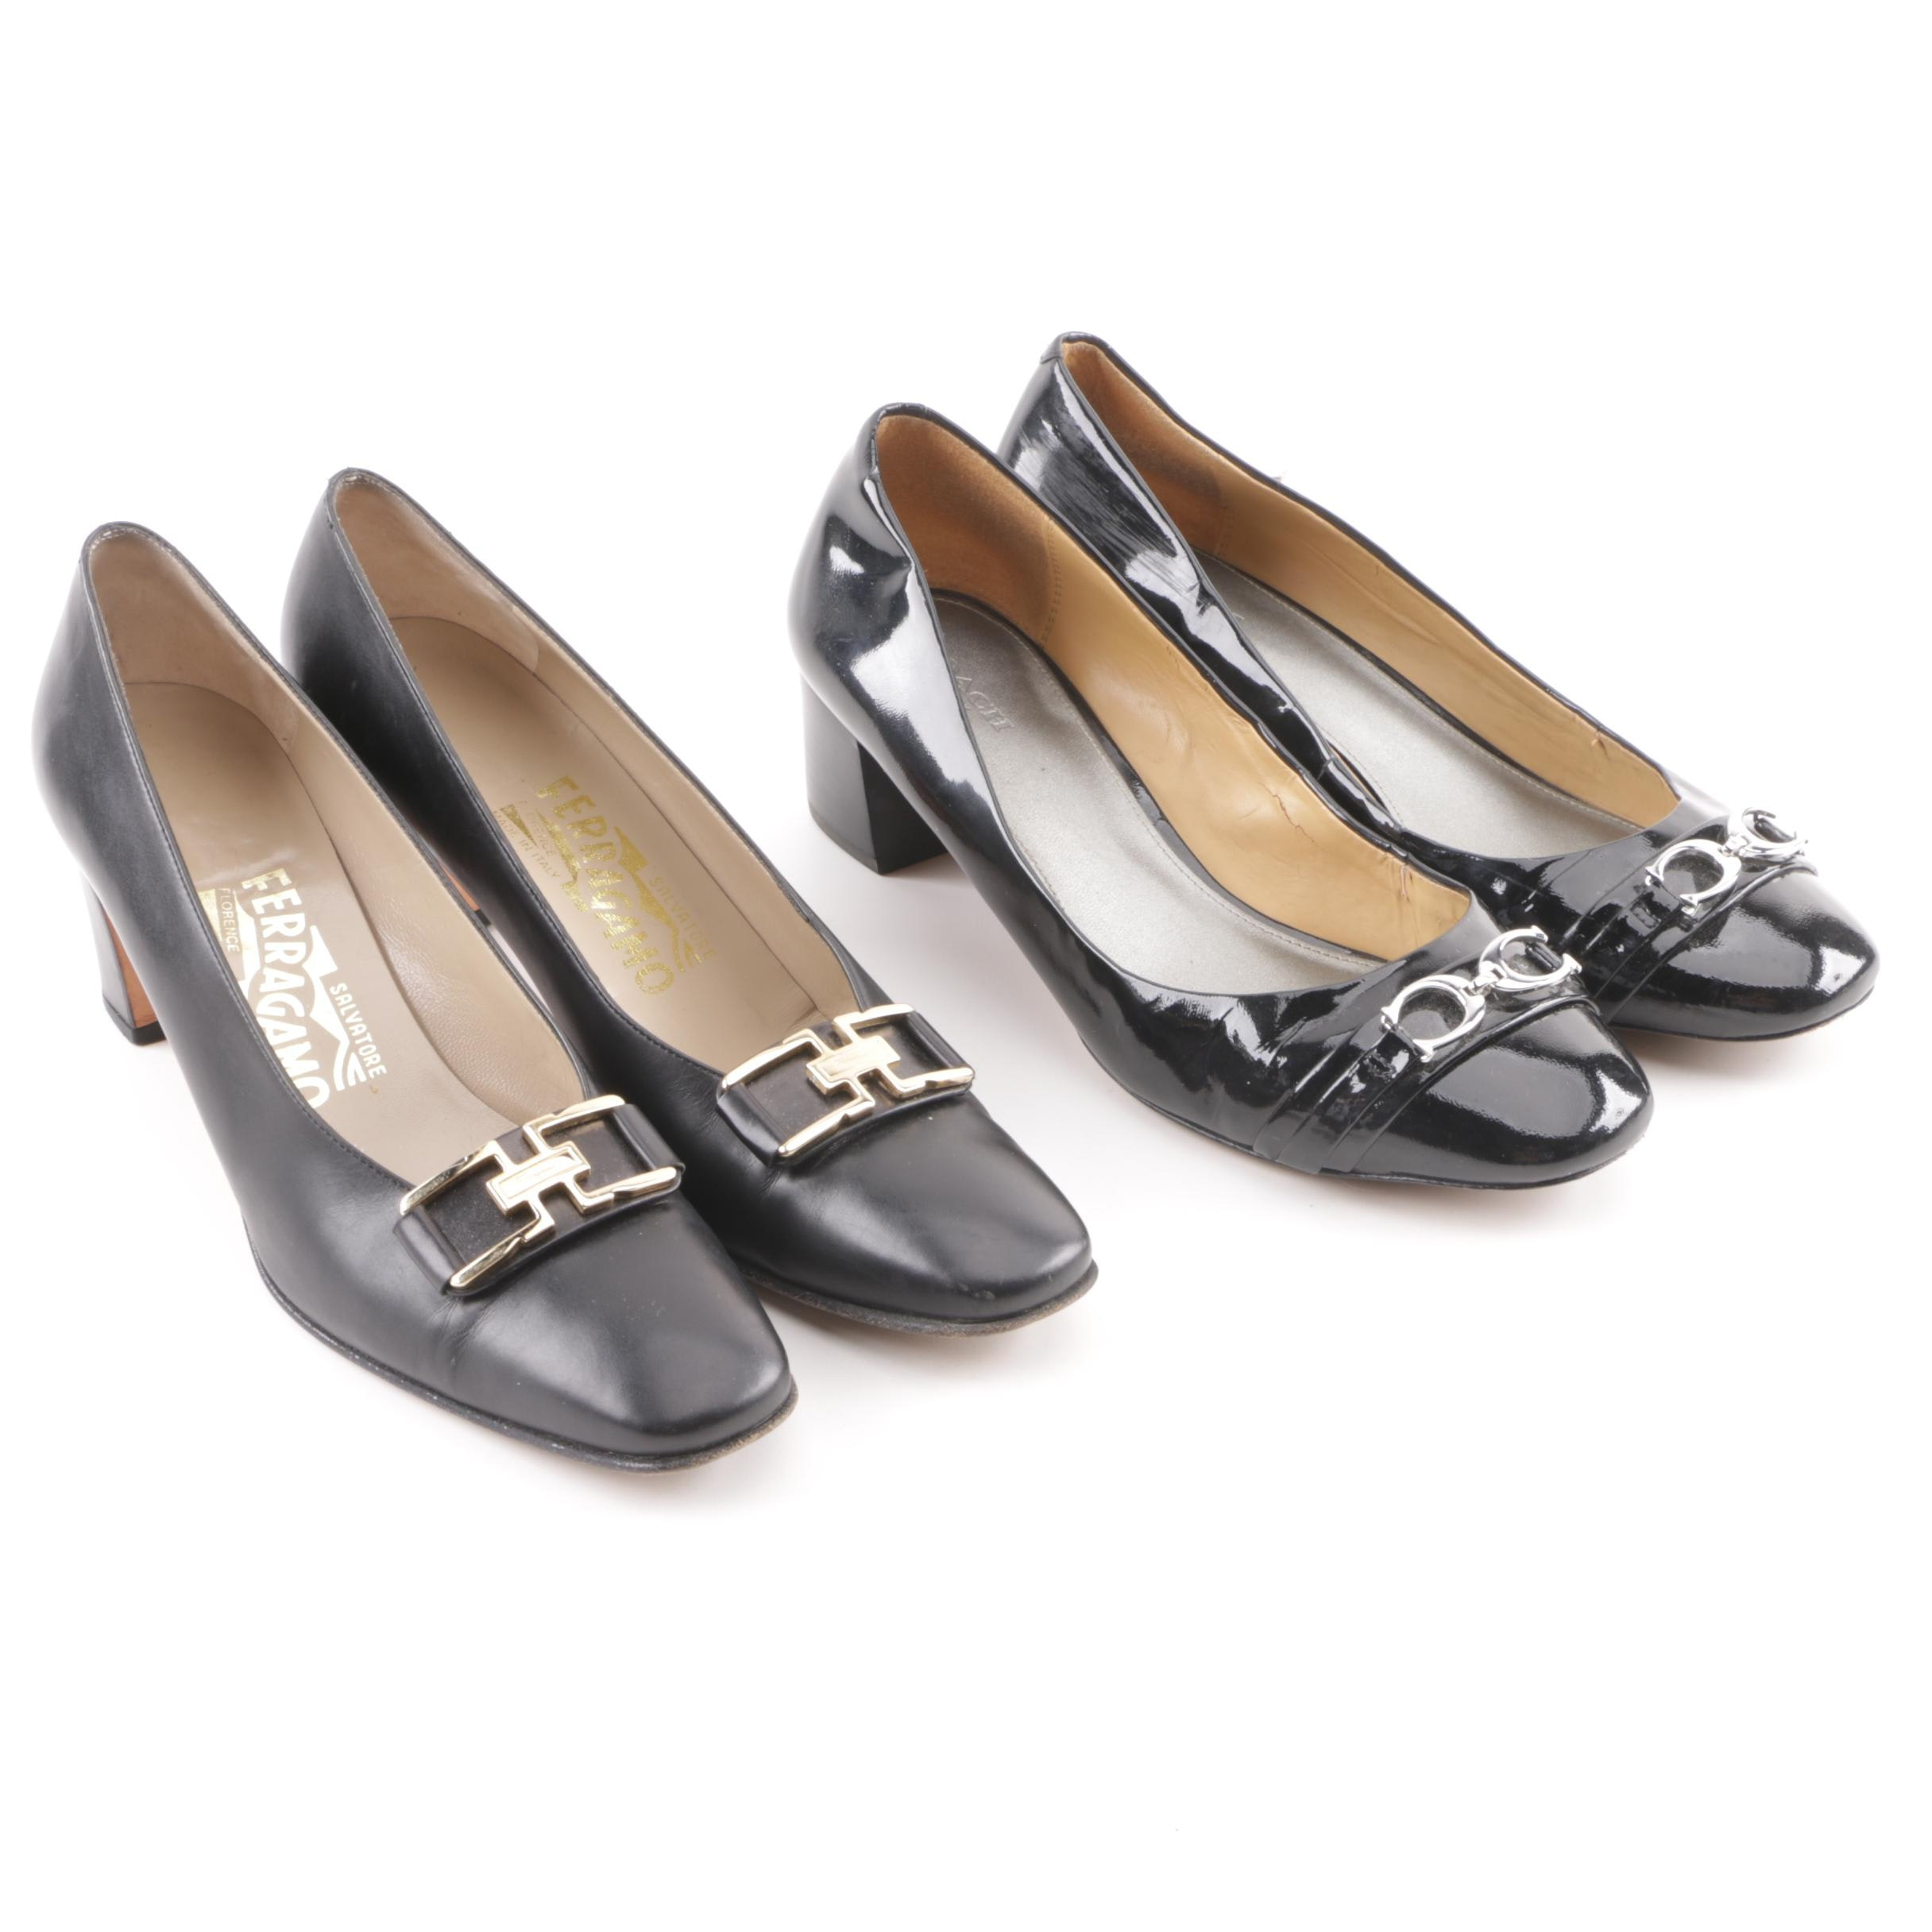 Salvatore Ferragamo and Coach Black Leather Low-Heeled Pumps with Brand Buckles